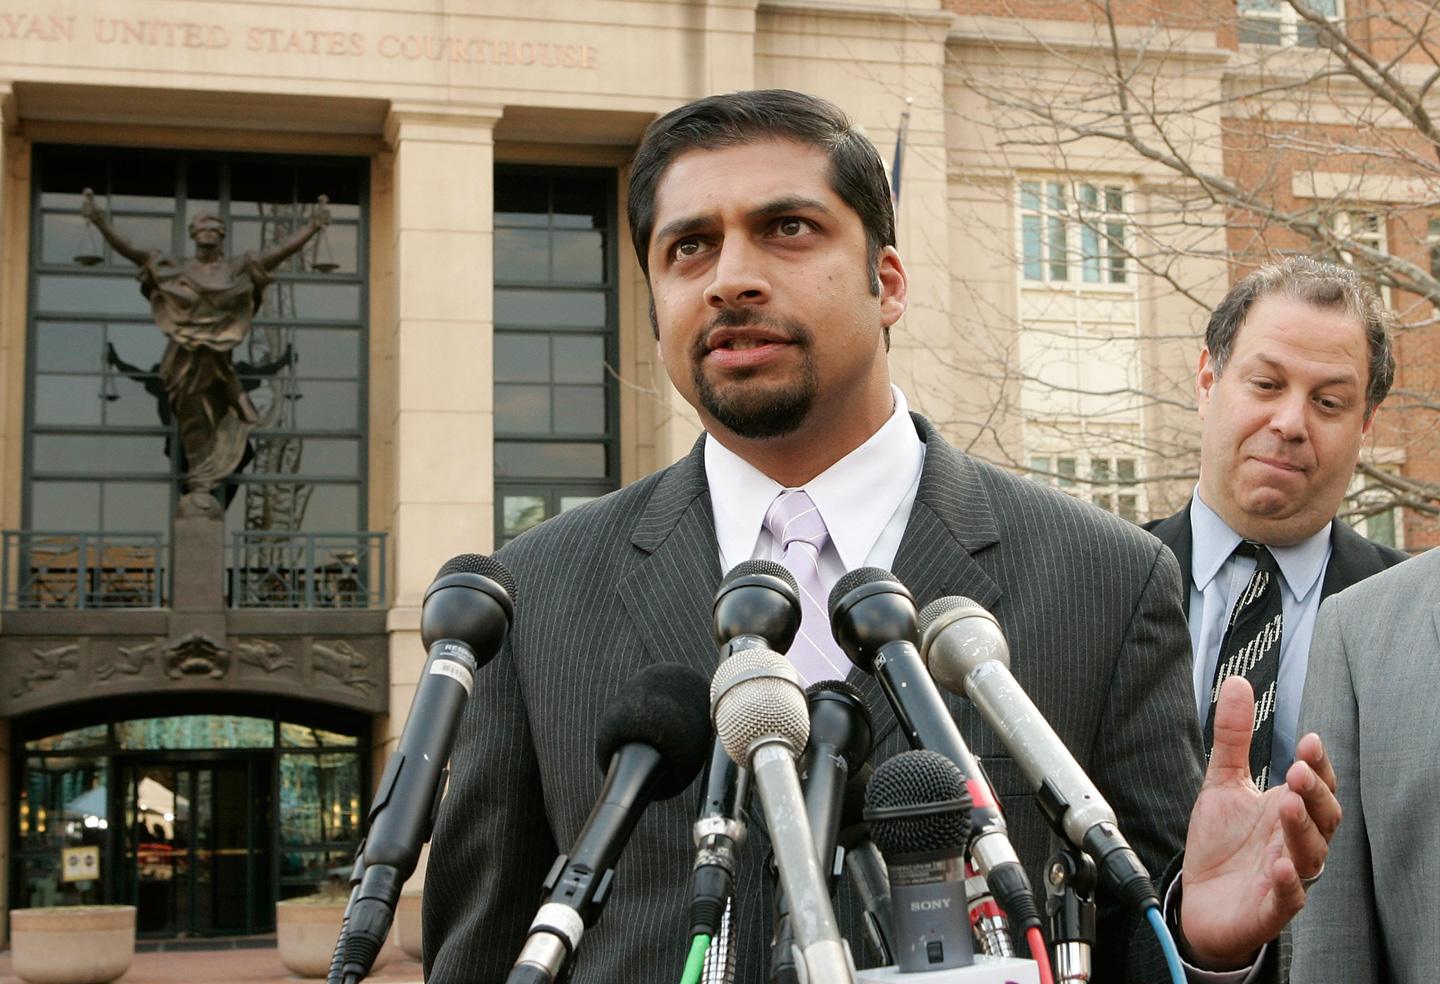 ALEXANDRIA, VA - MARCH 29:  Defense attorney Khurrum Wahid (L) of Ahmed Omar Abu Ali answer questions from the media as defense attorney Joshua Draetel (R) listens after Abu Ali was sentenced to 30 years in prison for joining al-Qaeda and conspiracy to assassinate U.S. President George W. Bush at a federal court March 29, 2006 in Alexandria, VA. Attorneys of Abu Ali said they will appeal for the case.  (Photo by Alex Wong/Getty Images)